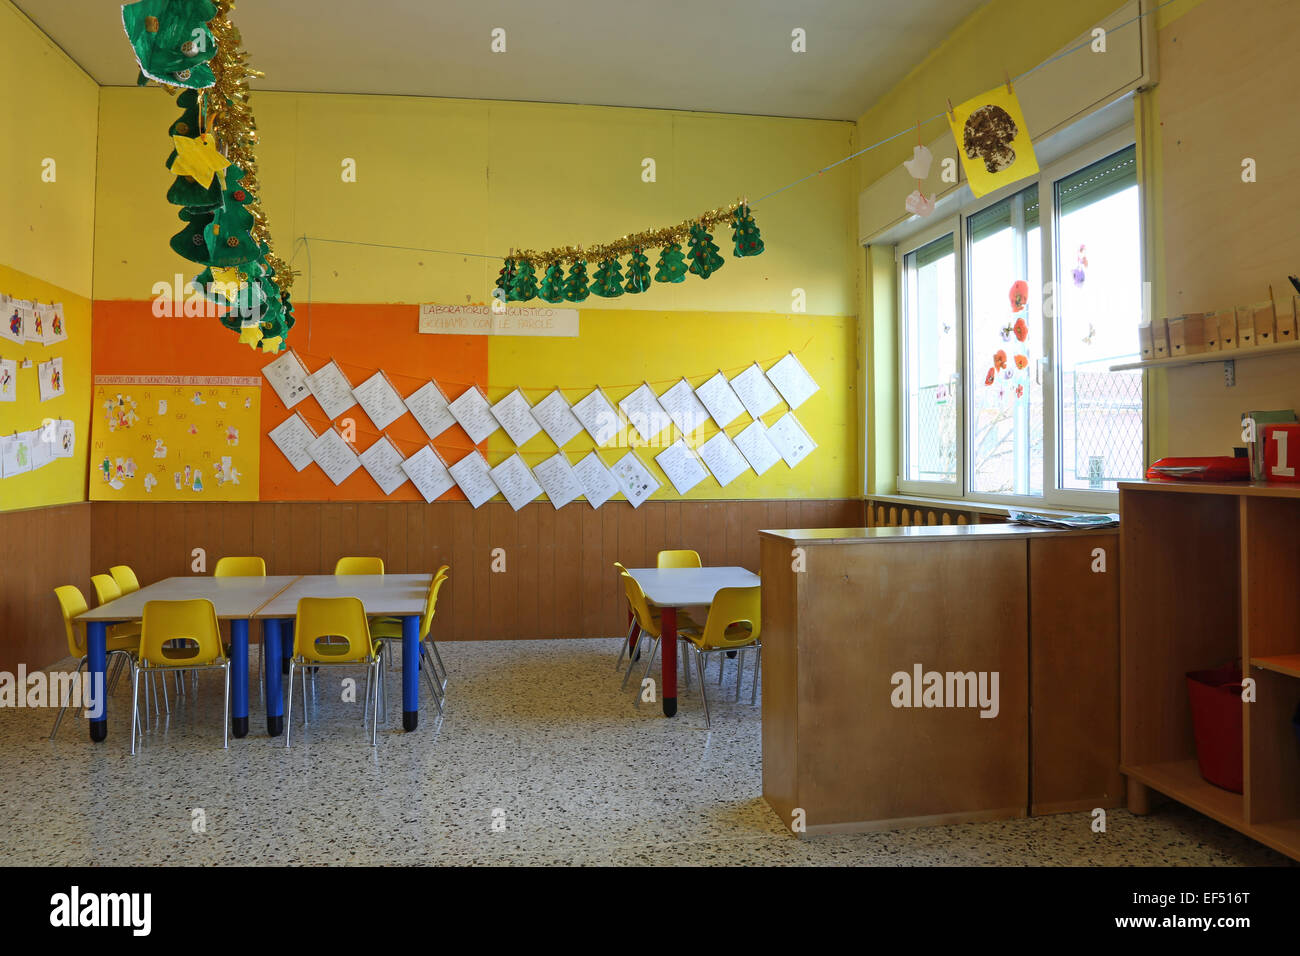 Kindergarten classroom table - Preschool Classroom With Yellow Chairs And Table With Drawings Of Children Hanging On The Walls